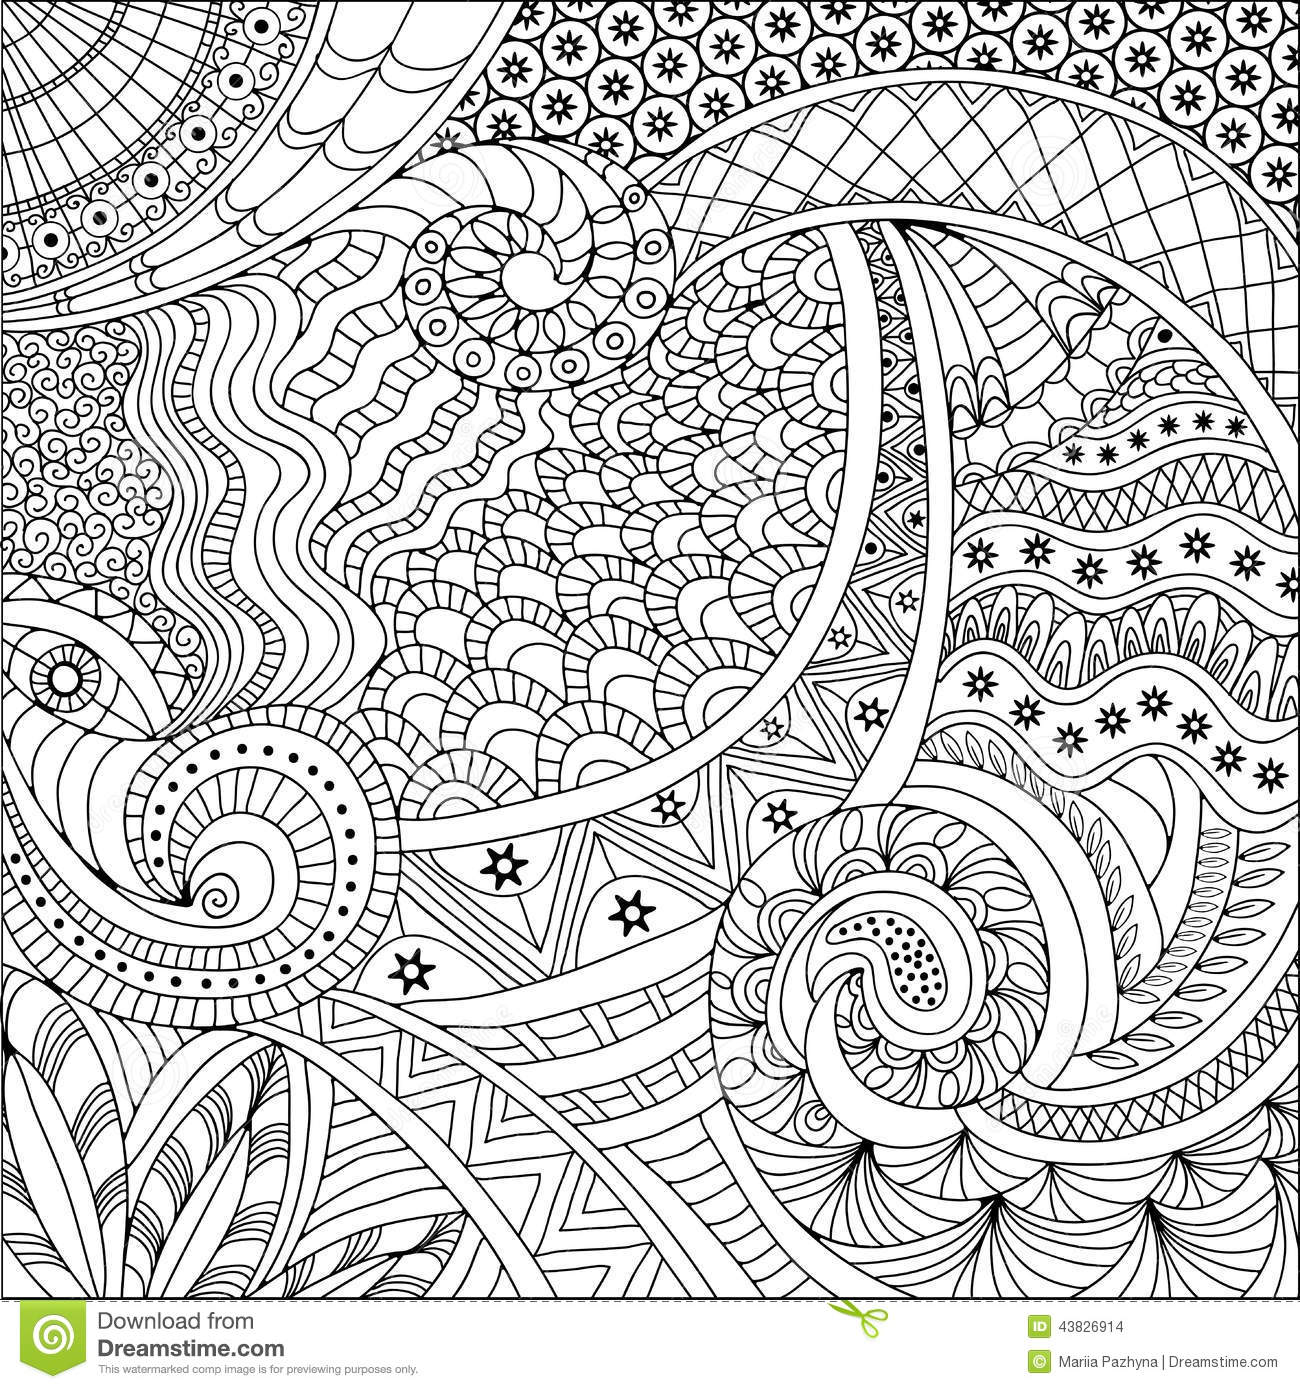 black background coloring pages - ethnic background pattern stock vector illustration of